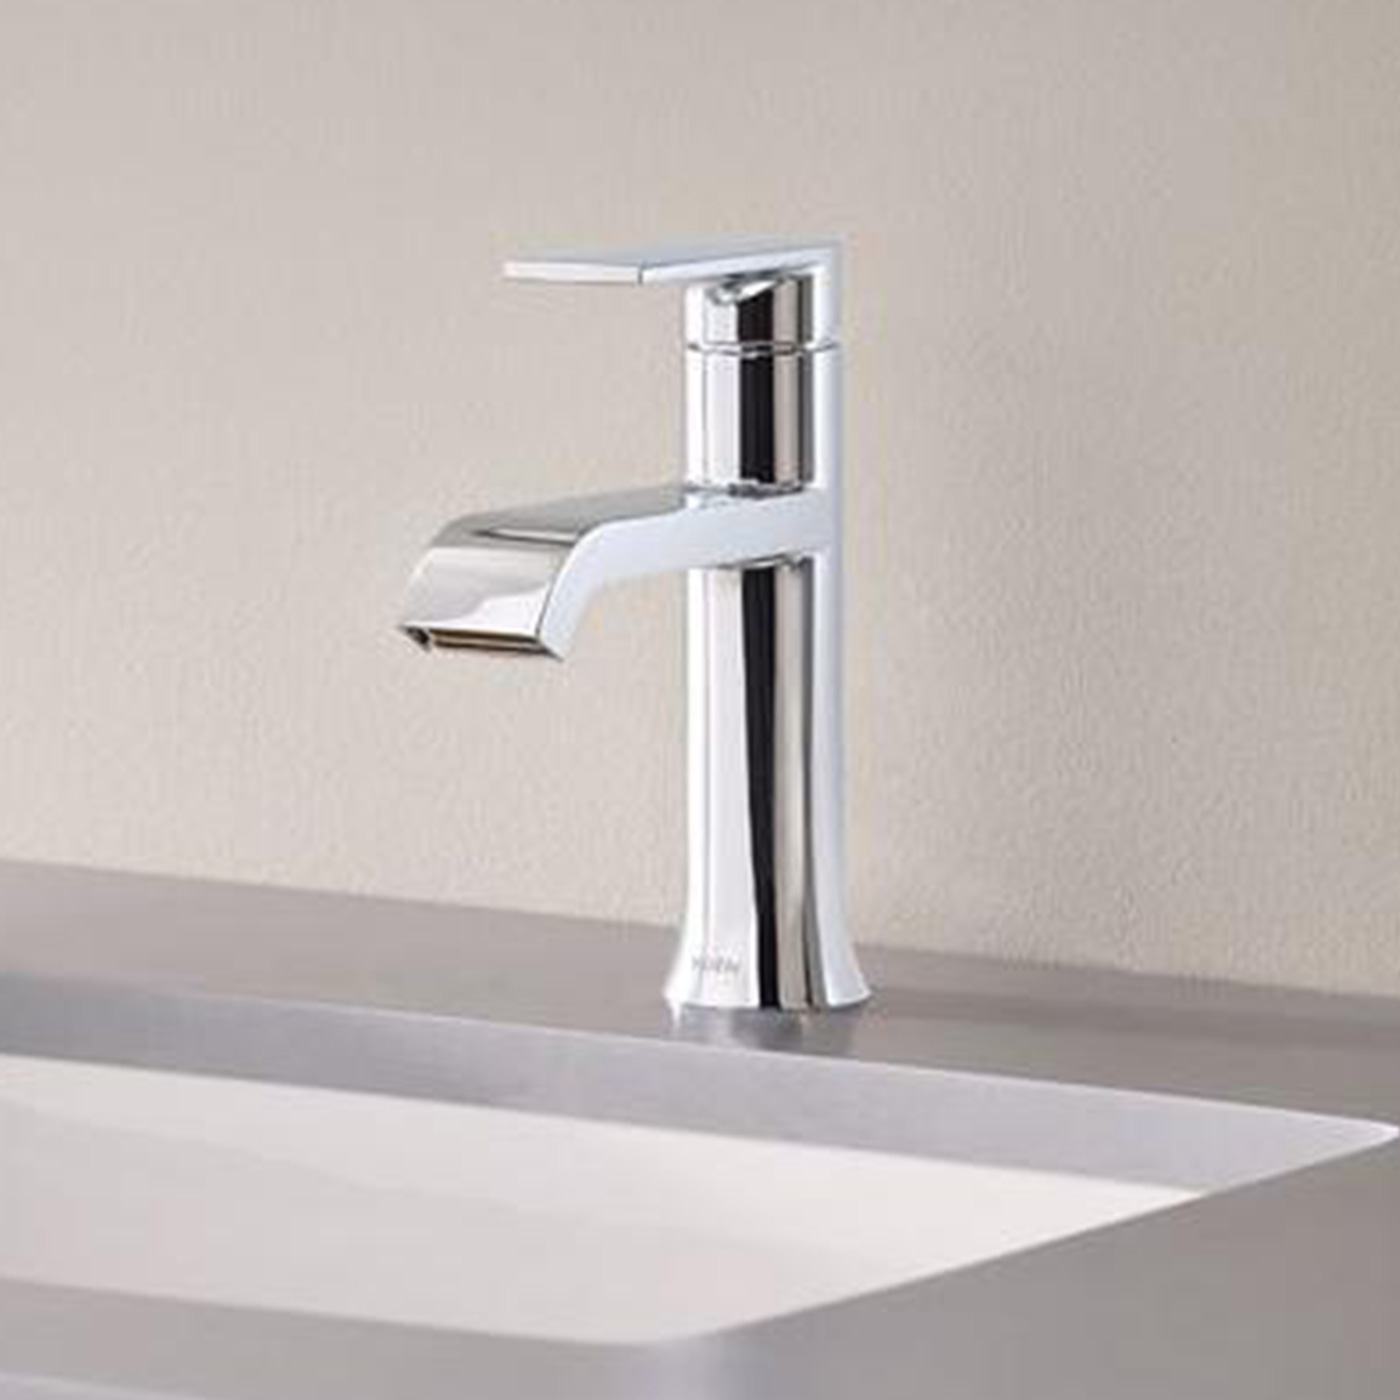 bathroom faucets for your sink shower head and bathtub